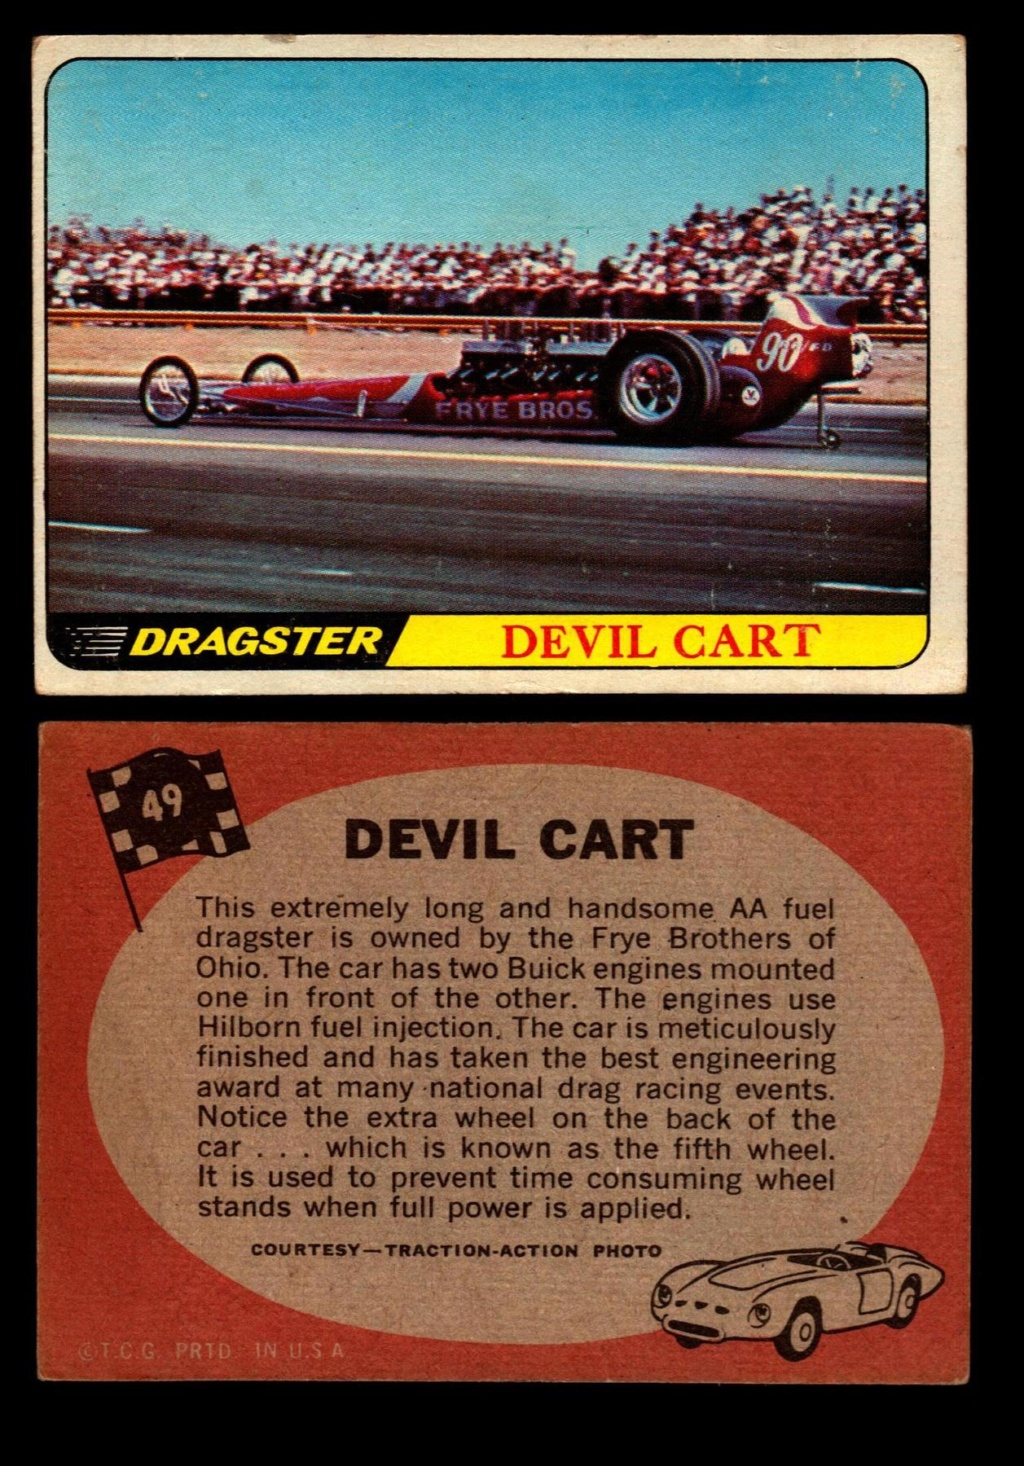 Hot Rods Topps - Vintage Trading Cards 1968 - Custom car - Dragster - Racer - Dream car - Barris Kustom City - Ed Roth Darrill Starbird, Gene Winfield, Bill Cuchenberry - Page 2 49_c1a10